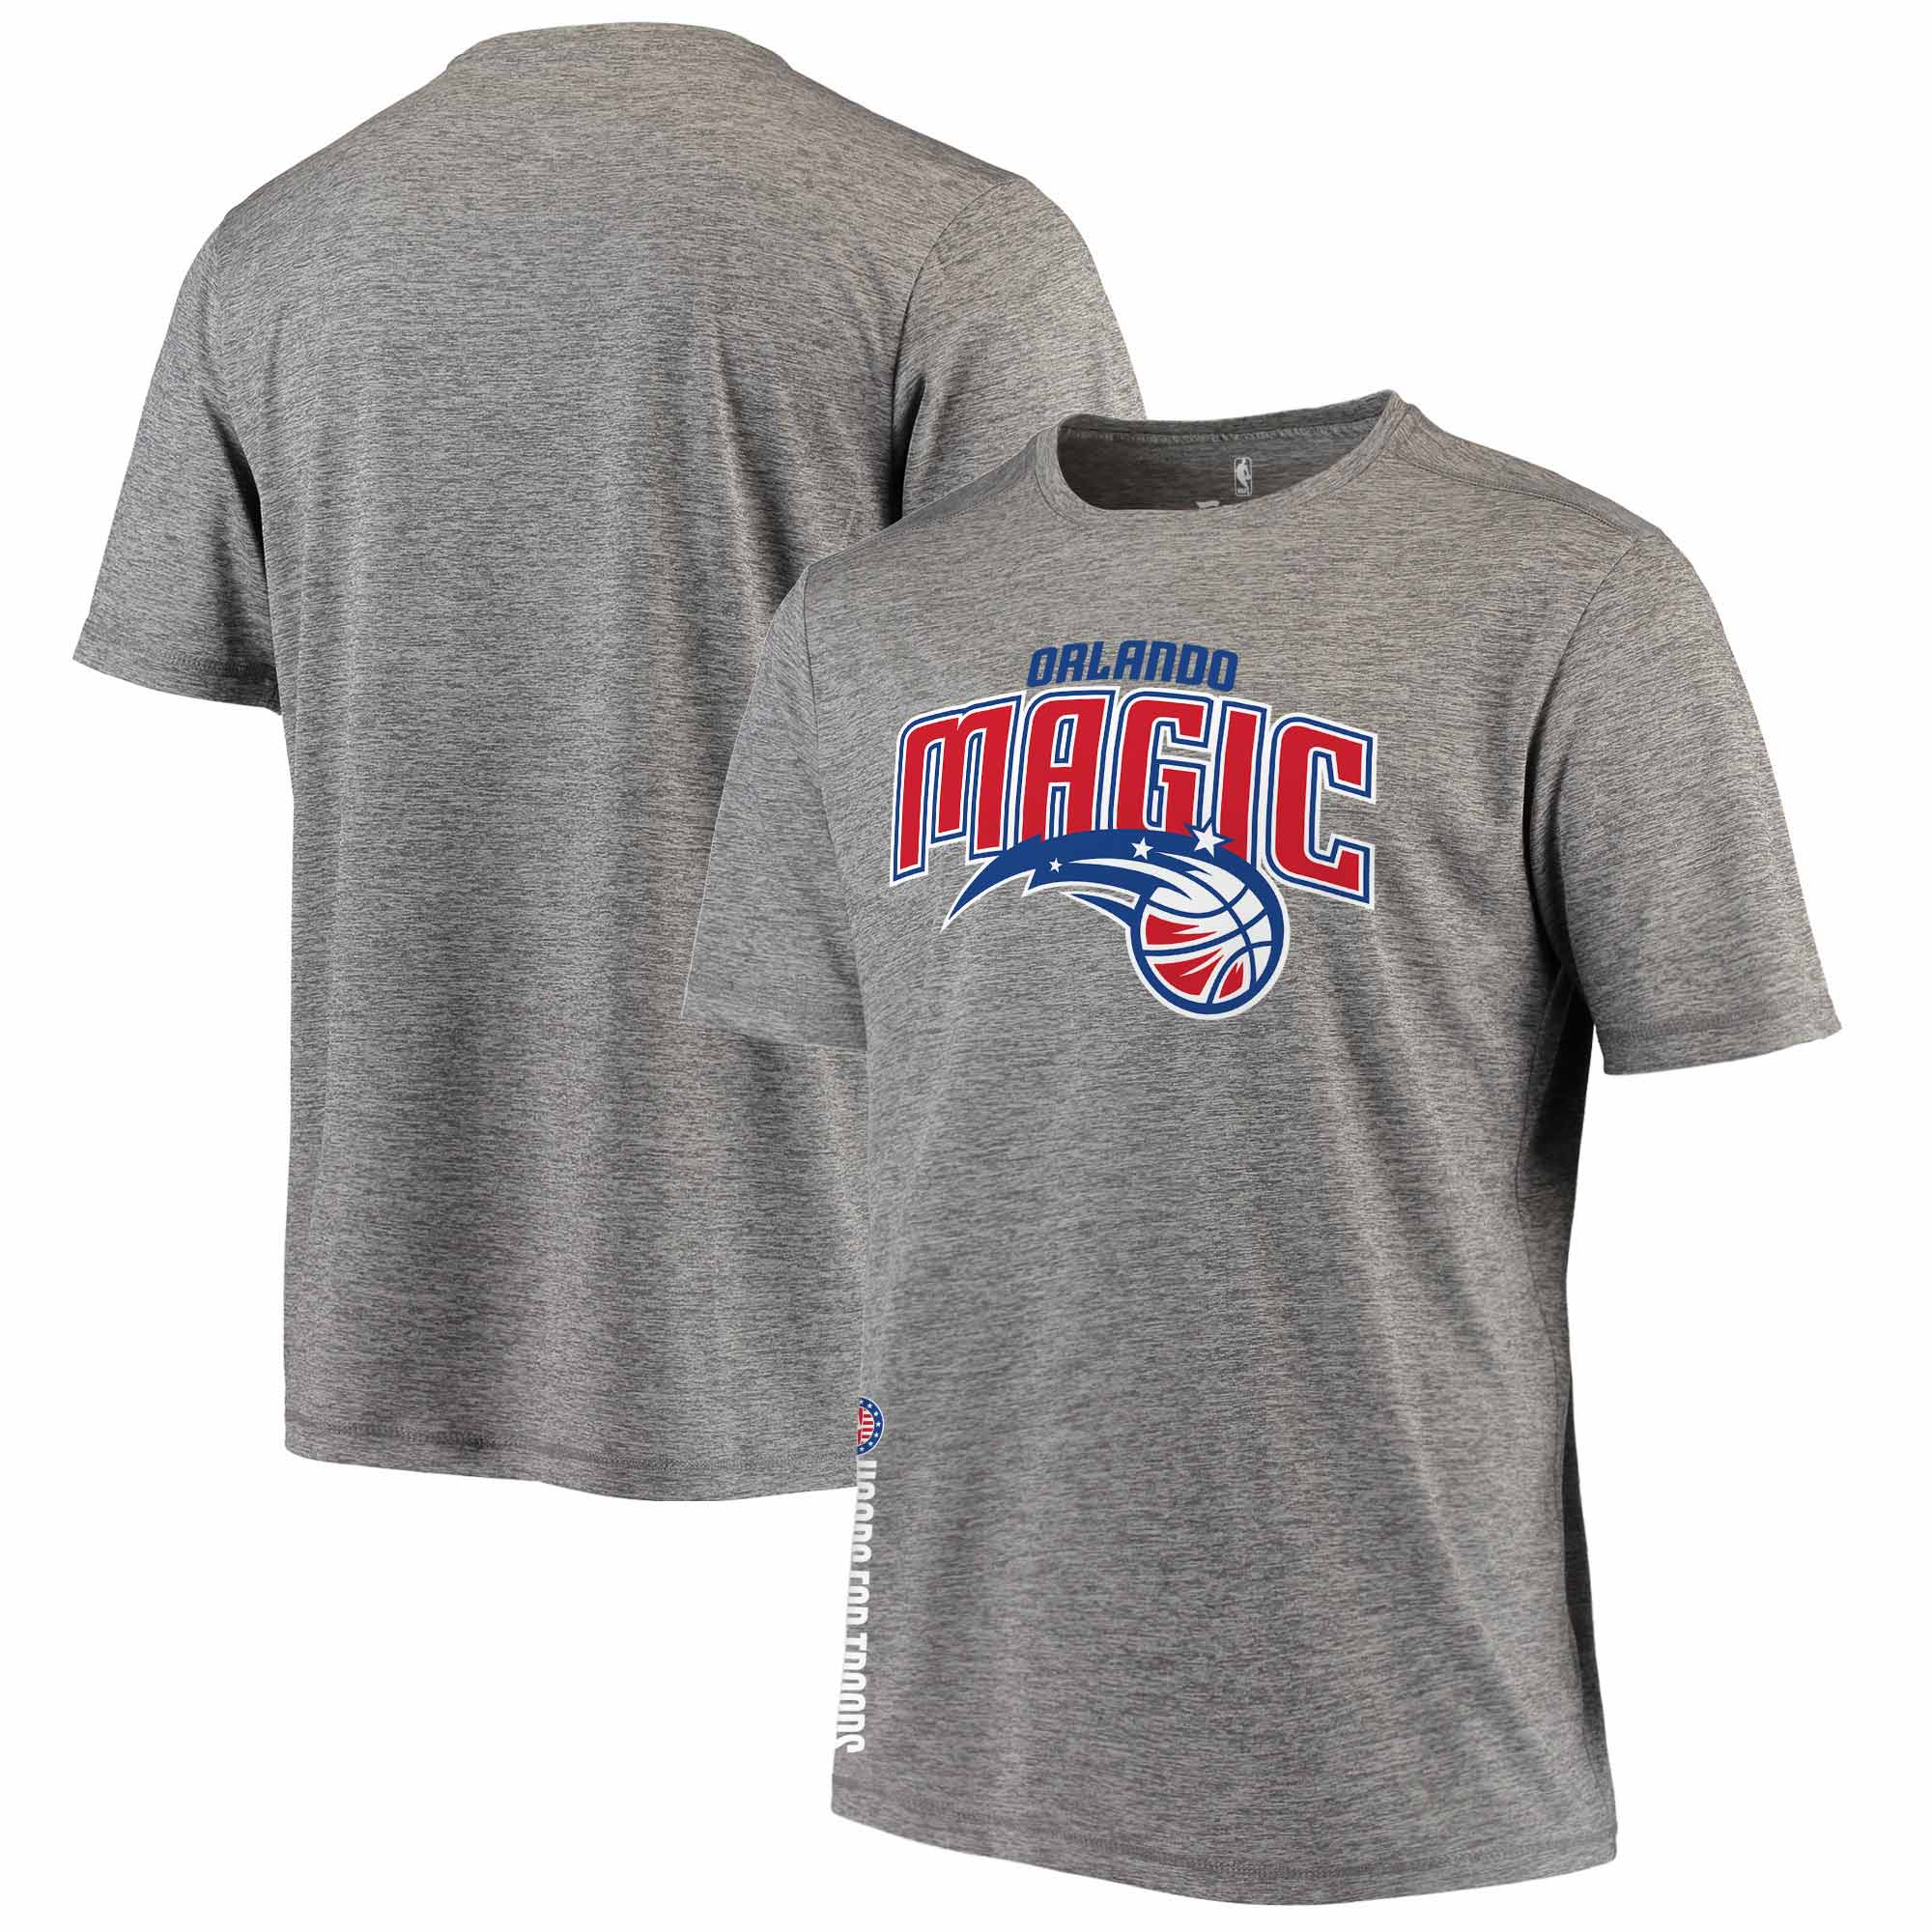 Orlando Magic Fanatics Branded Hoops For Troops T-Shirt - Heathered Gray